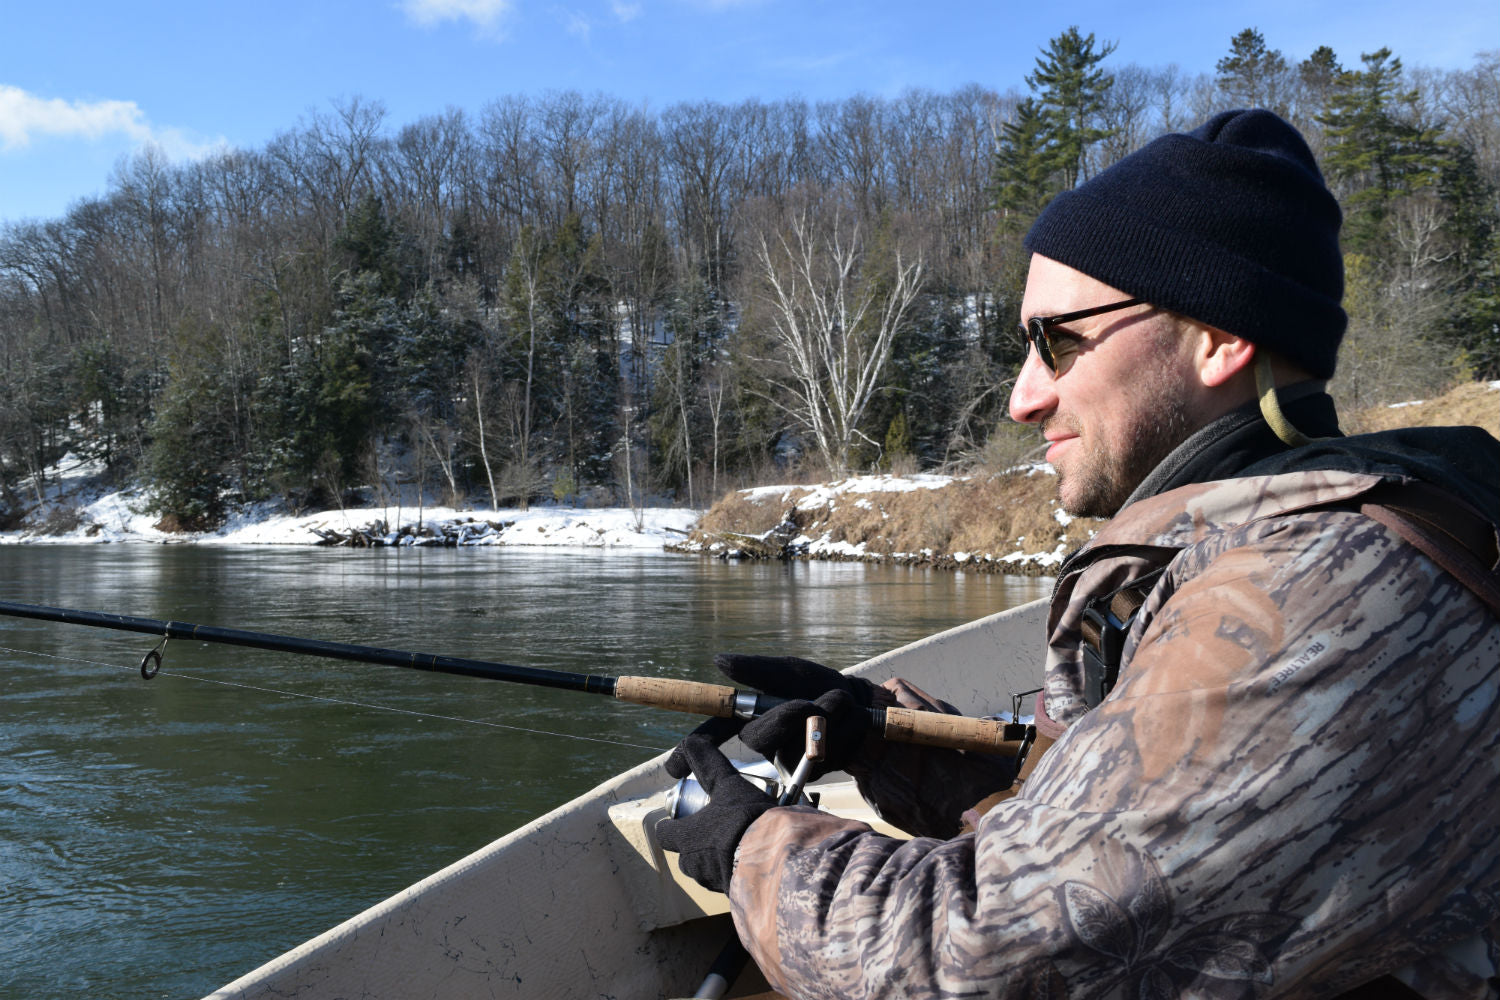 Float Fishing and Camping on the Big Manistee - Washington Alley